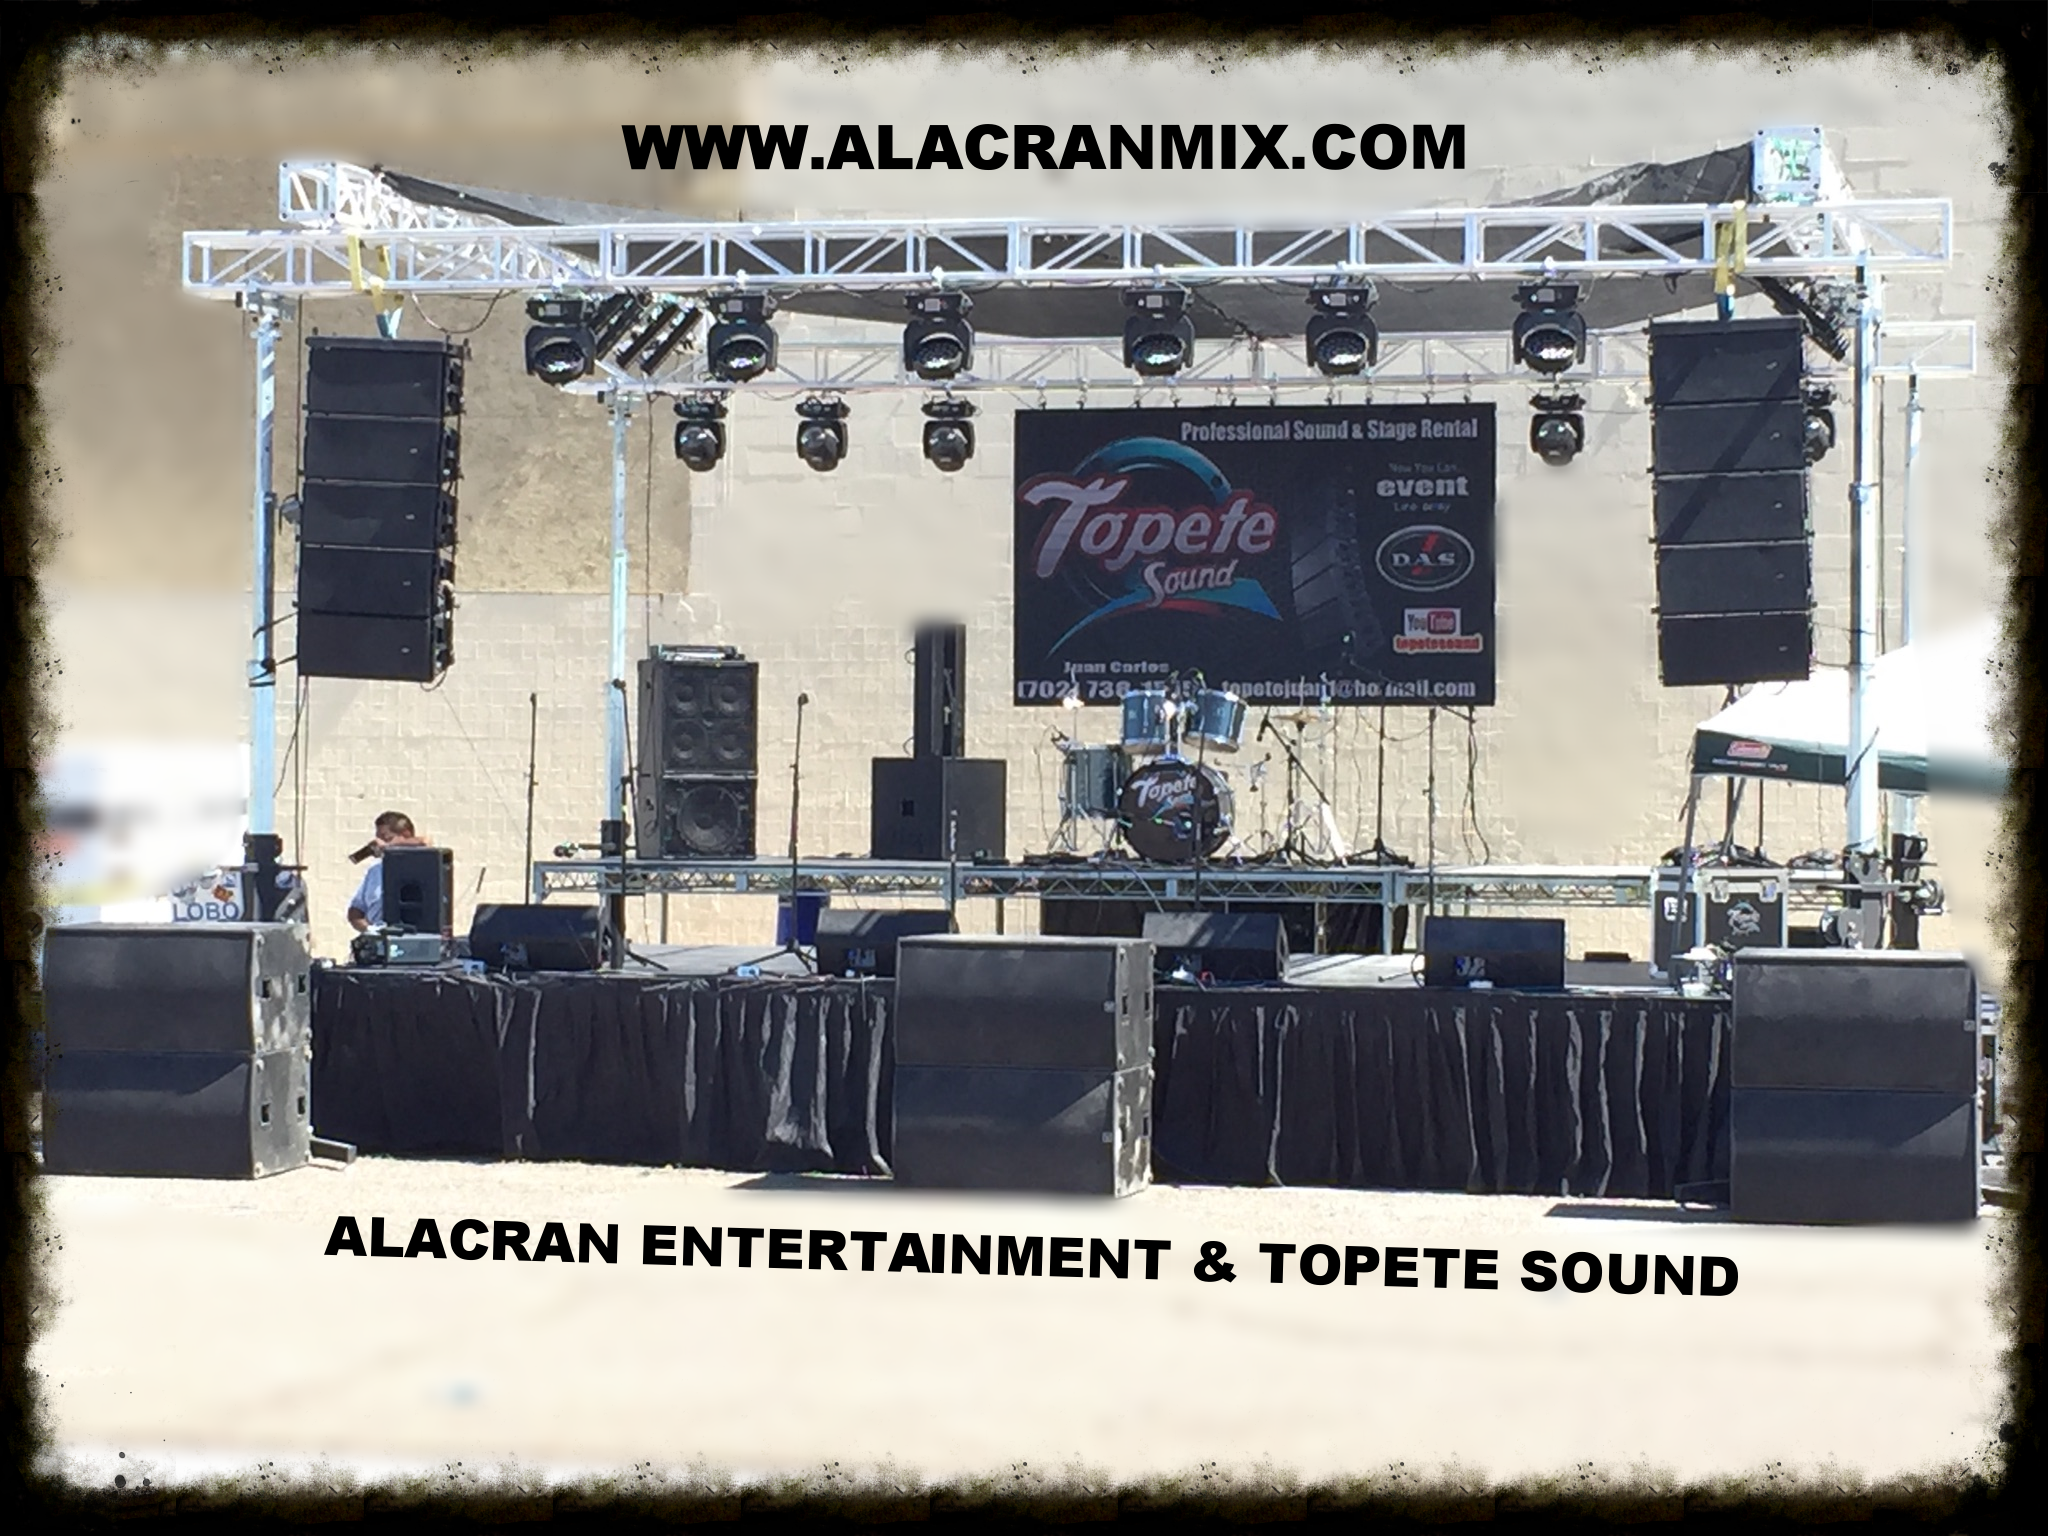 WE RENT CONCERT EQUIPMENT   Planning a massive event? We have you covered, We have D.A.S linearray audio with bass Speakers and 16 digital mixer, monitors and lighting. Lets do this!